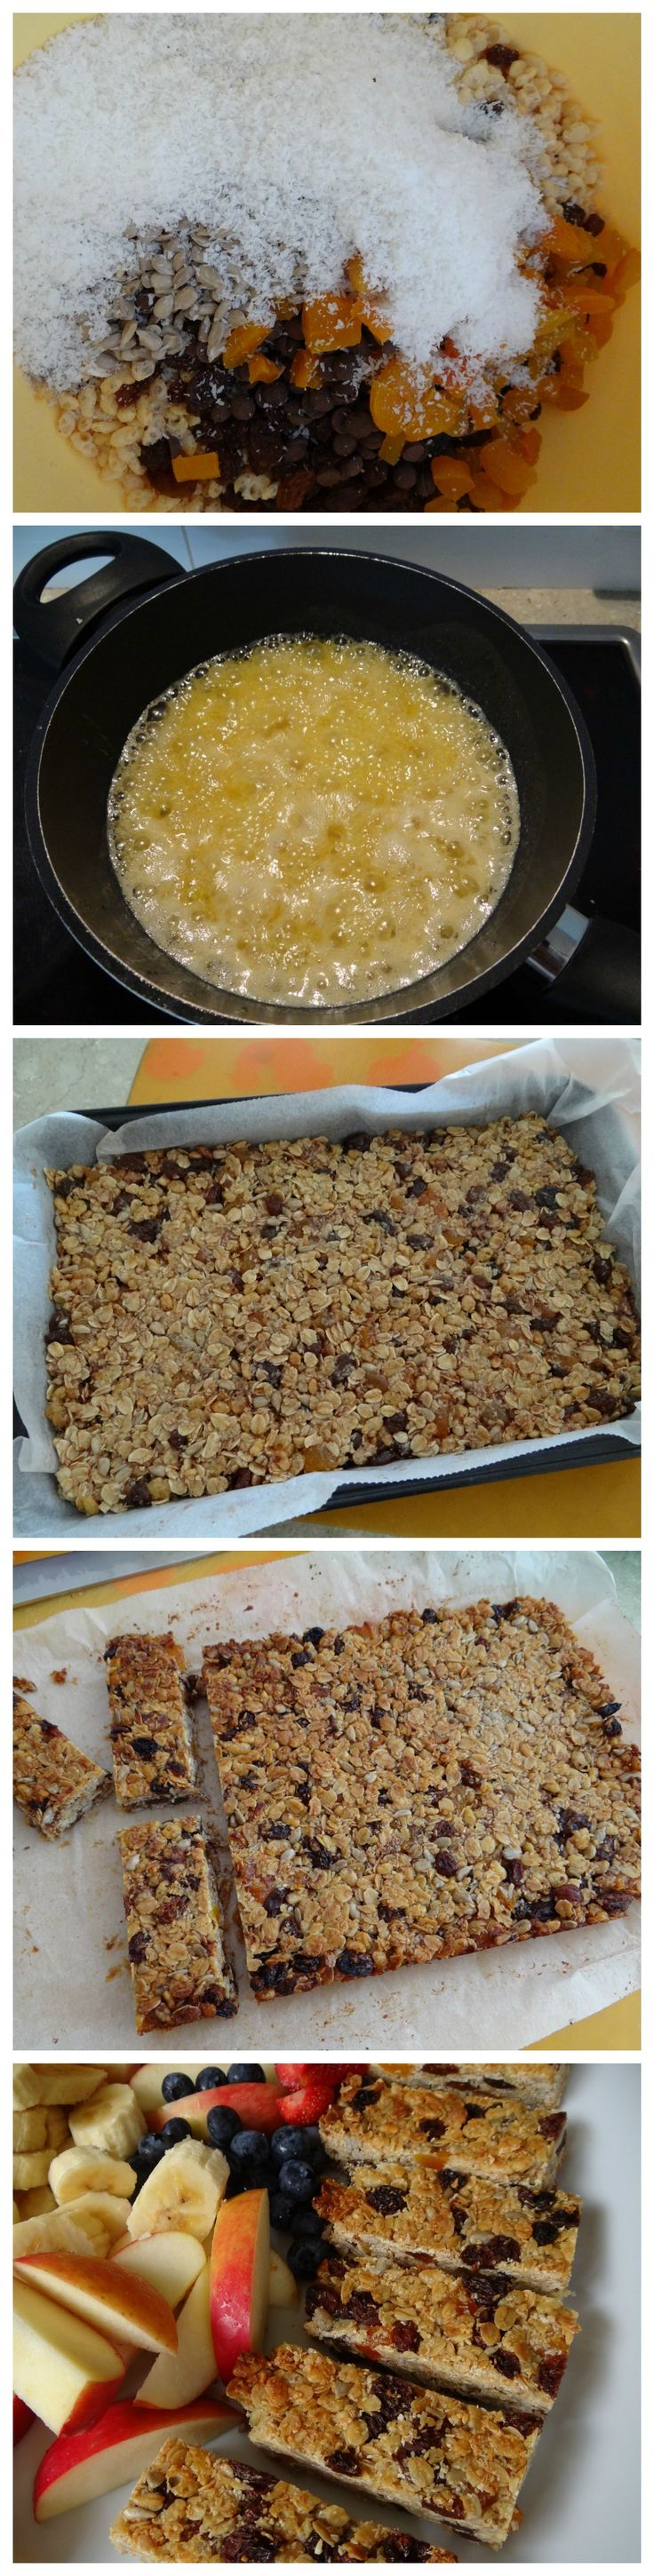 muesli slice recipe - easy lunch box recipe